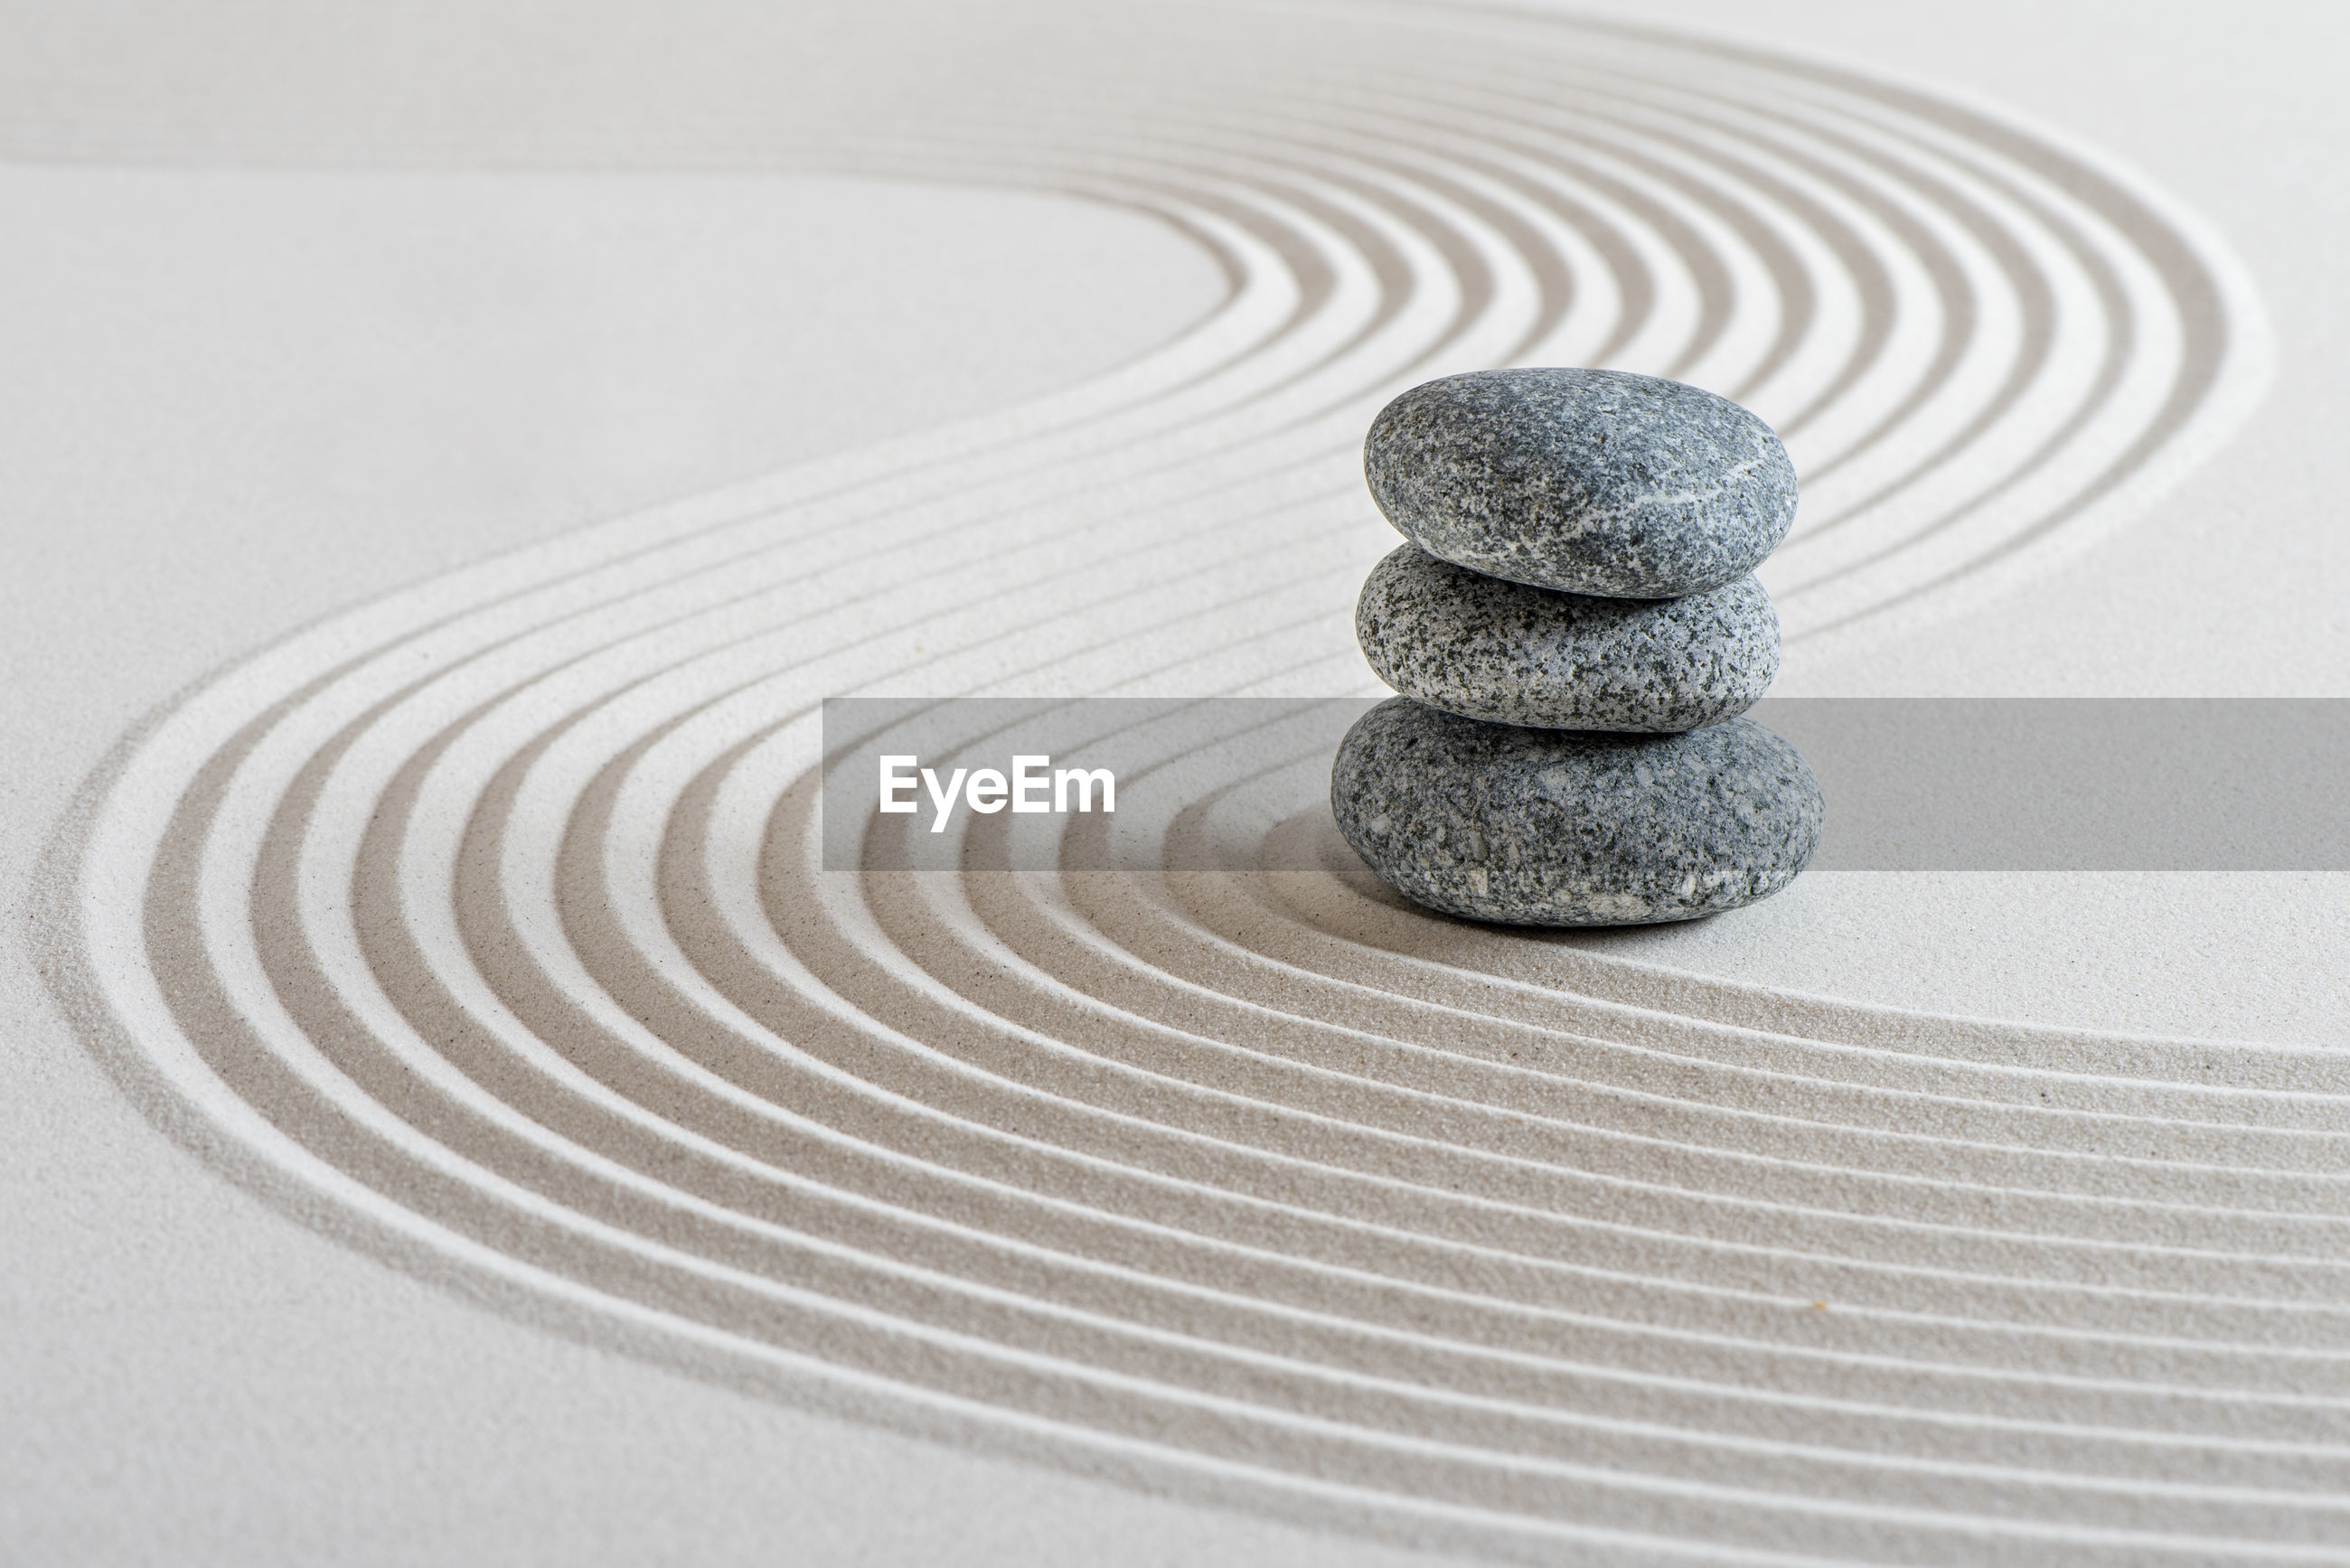 CLOSE-UP OF STONES ON TABLE